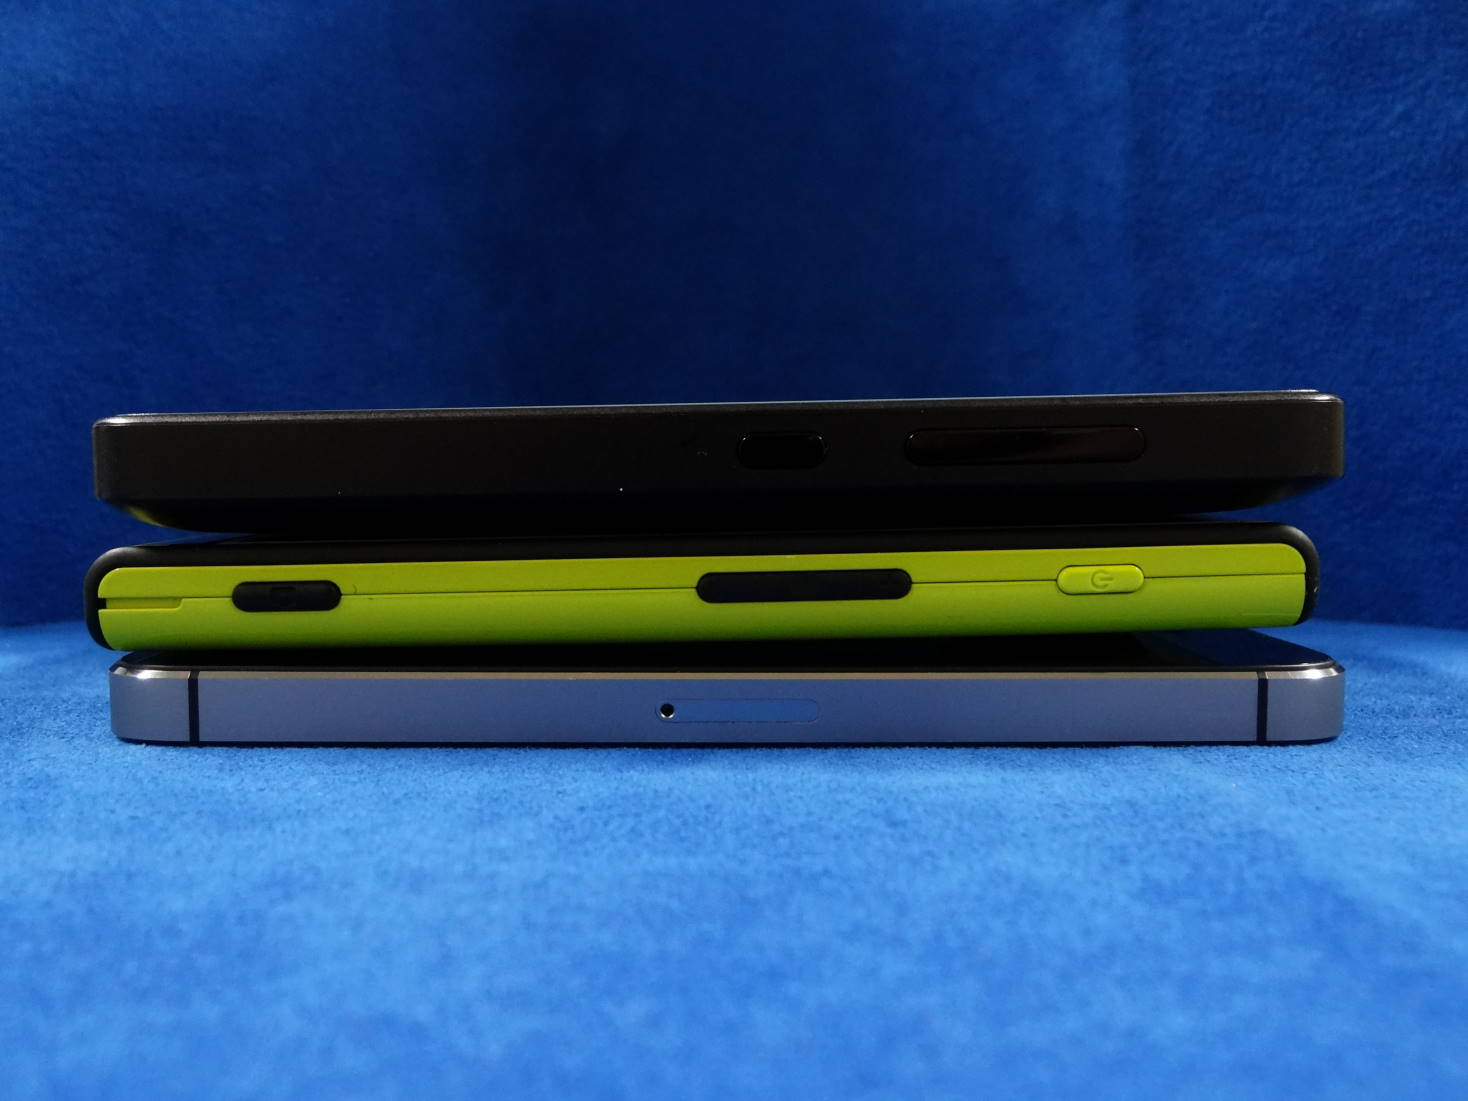 Windows Phone IS12T と Microsoft Lumia 430 と iPhone 5s 縦幅比較